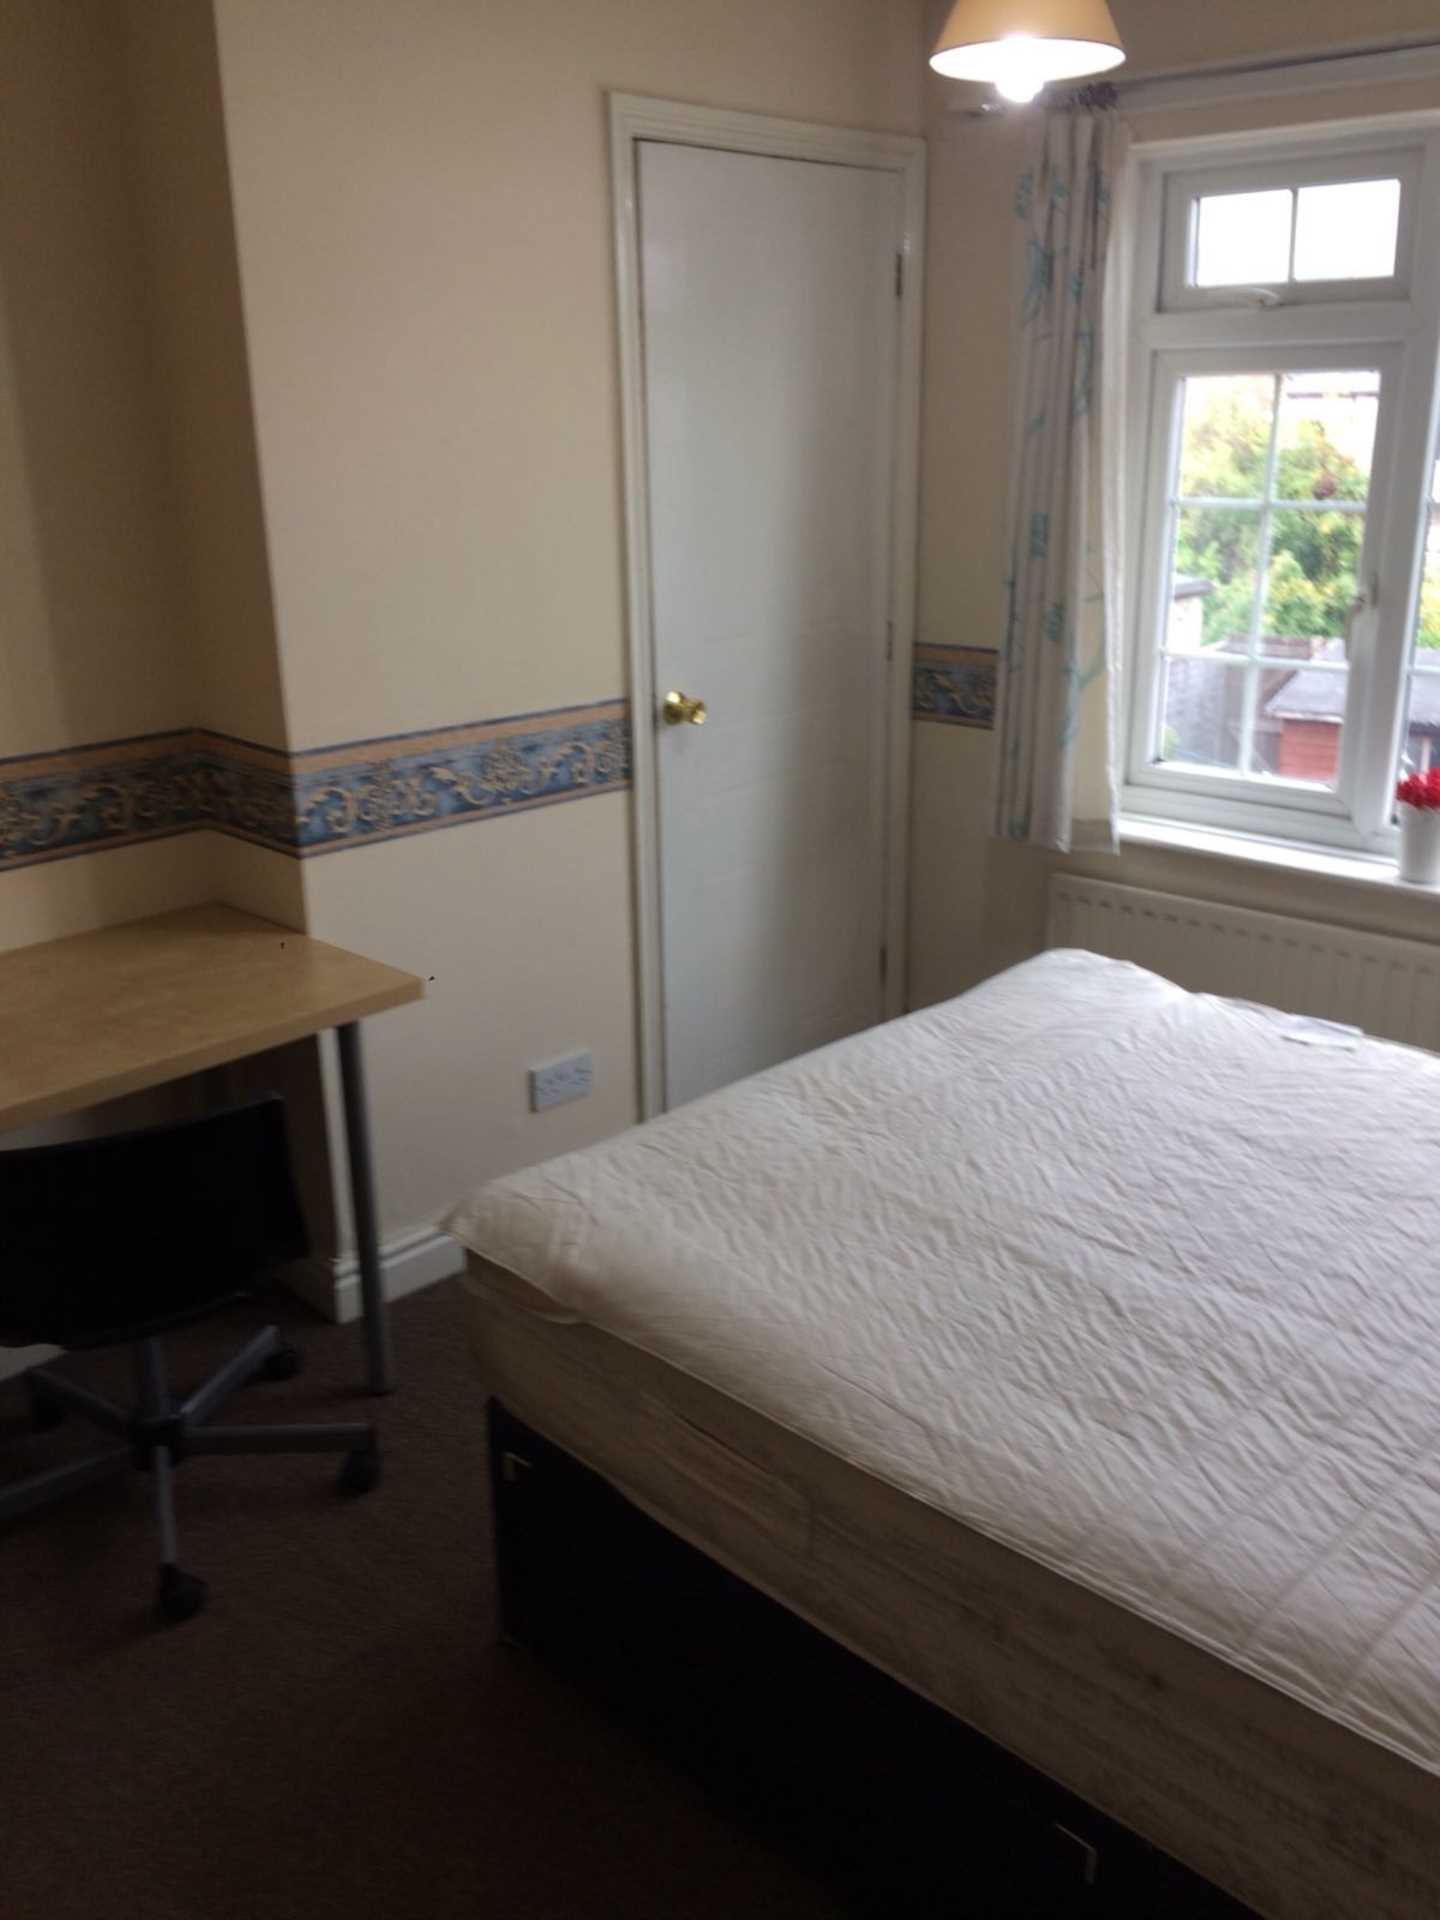 Room 4, Queensland Avenue - 5 bedroom 2 bathroom student home fully furnished, WIFI & bills included - NO FEES, Image 9